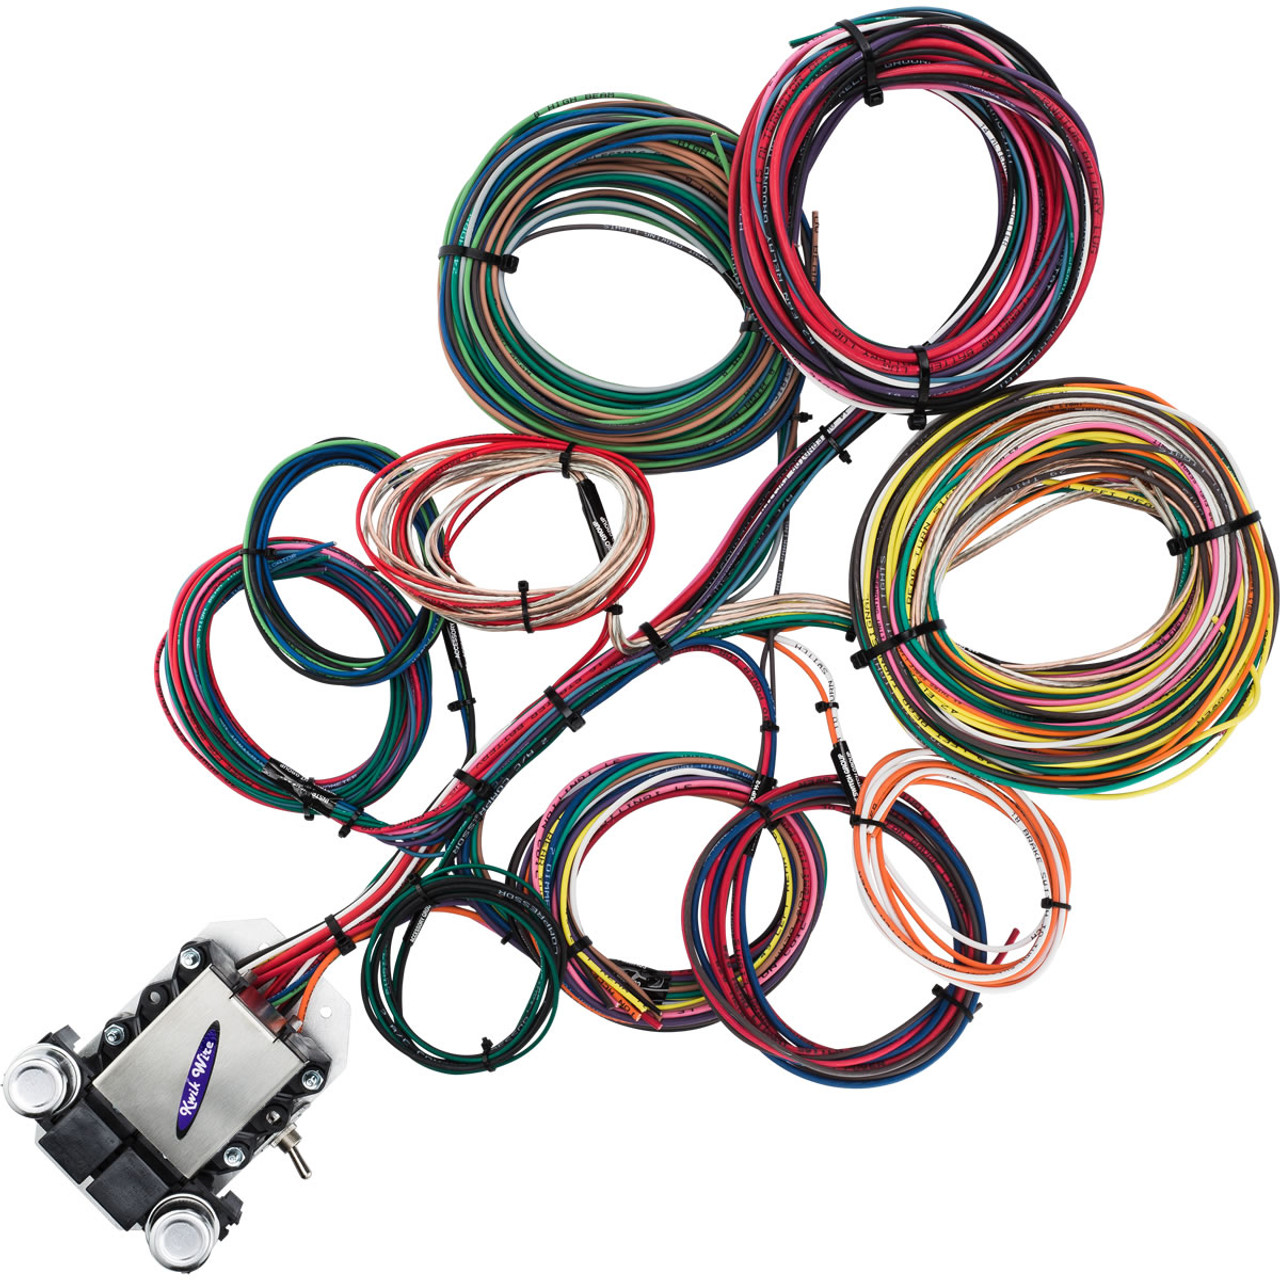 14 circuit ford wire harness [ 1200 x 1200 Pixel ]